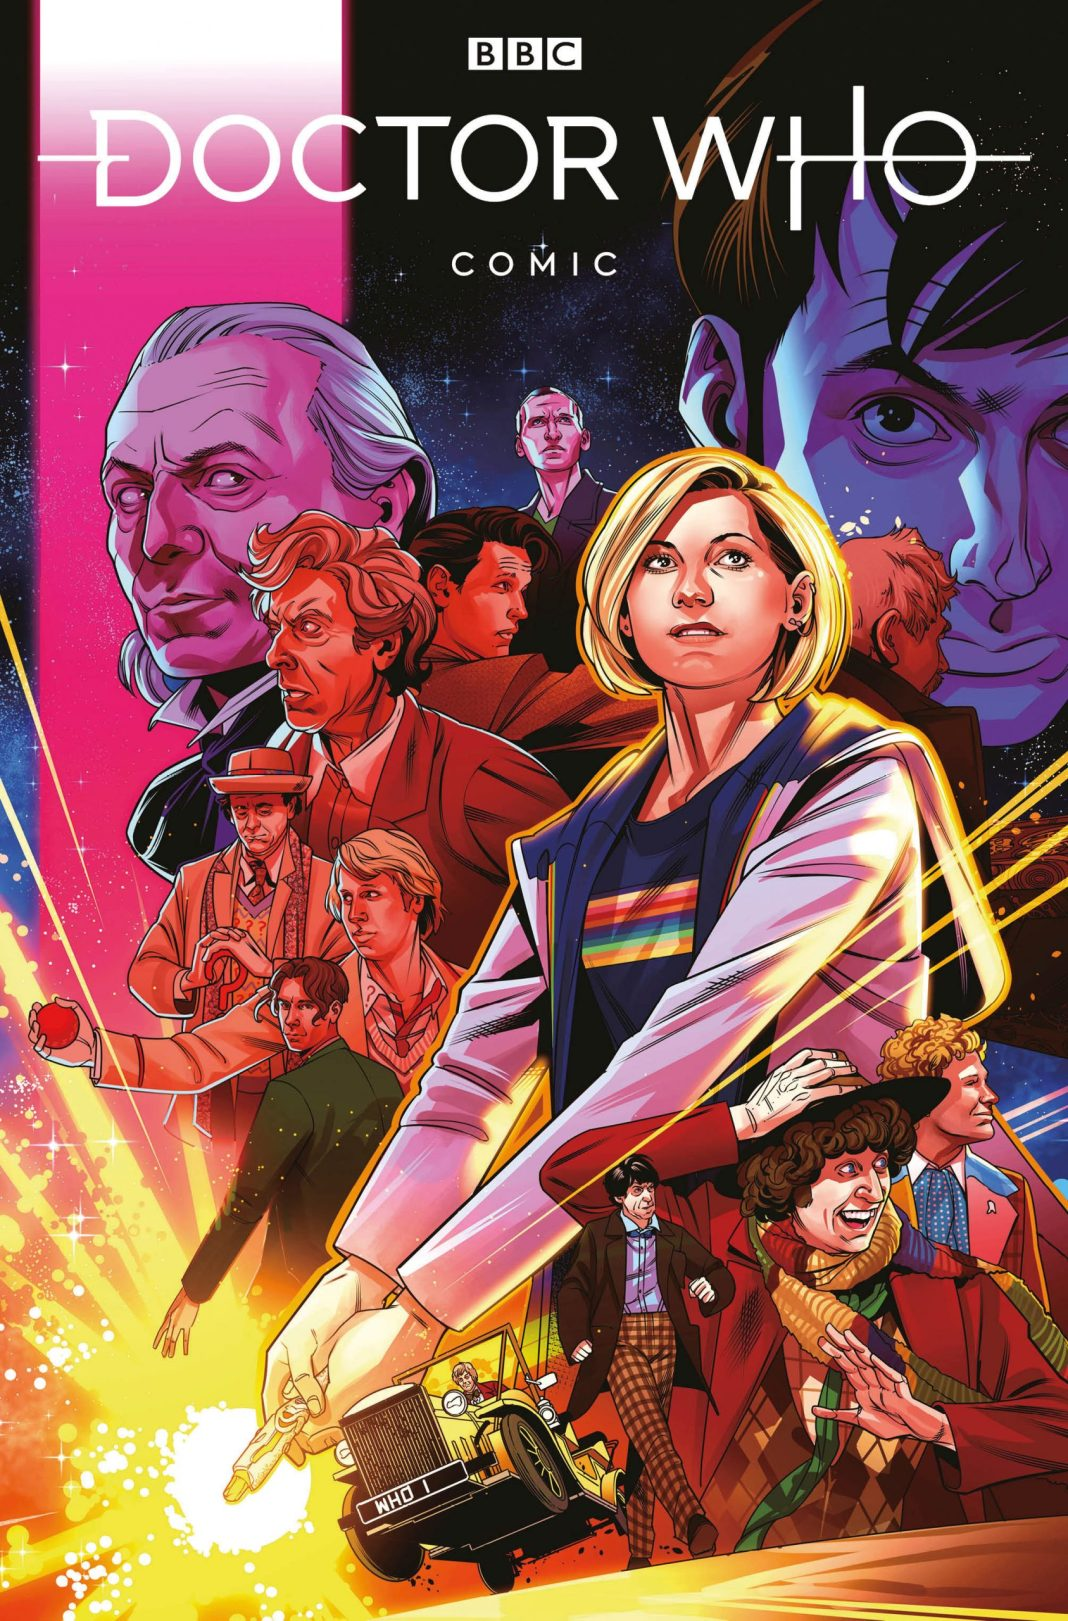 Doctor Who Comic Titan Comics Thirteenth Doctor Rachael Stott